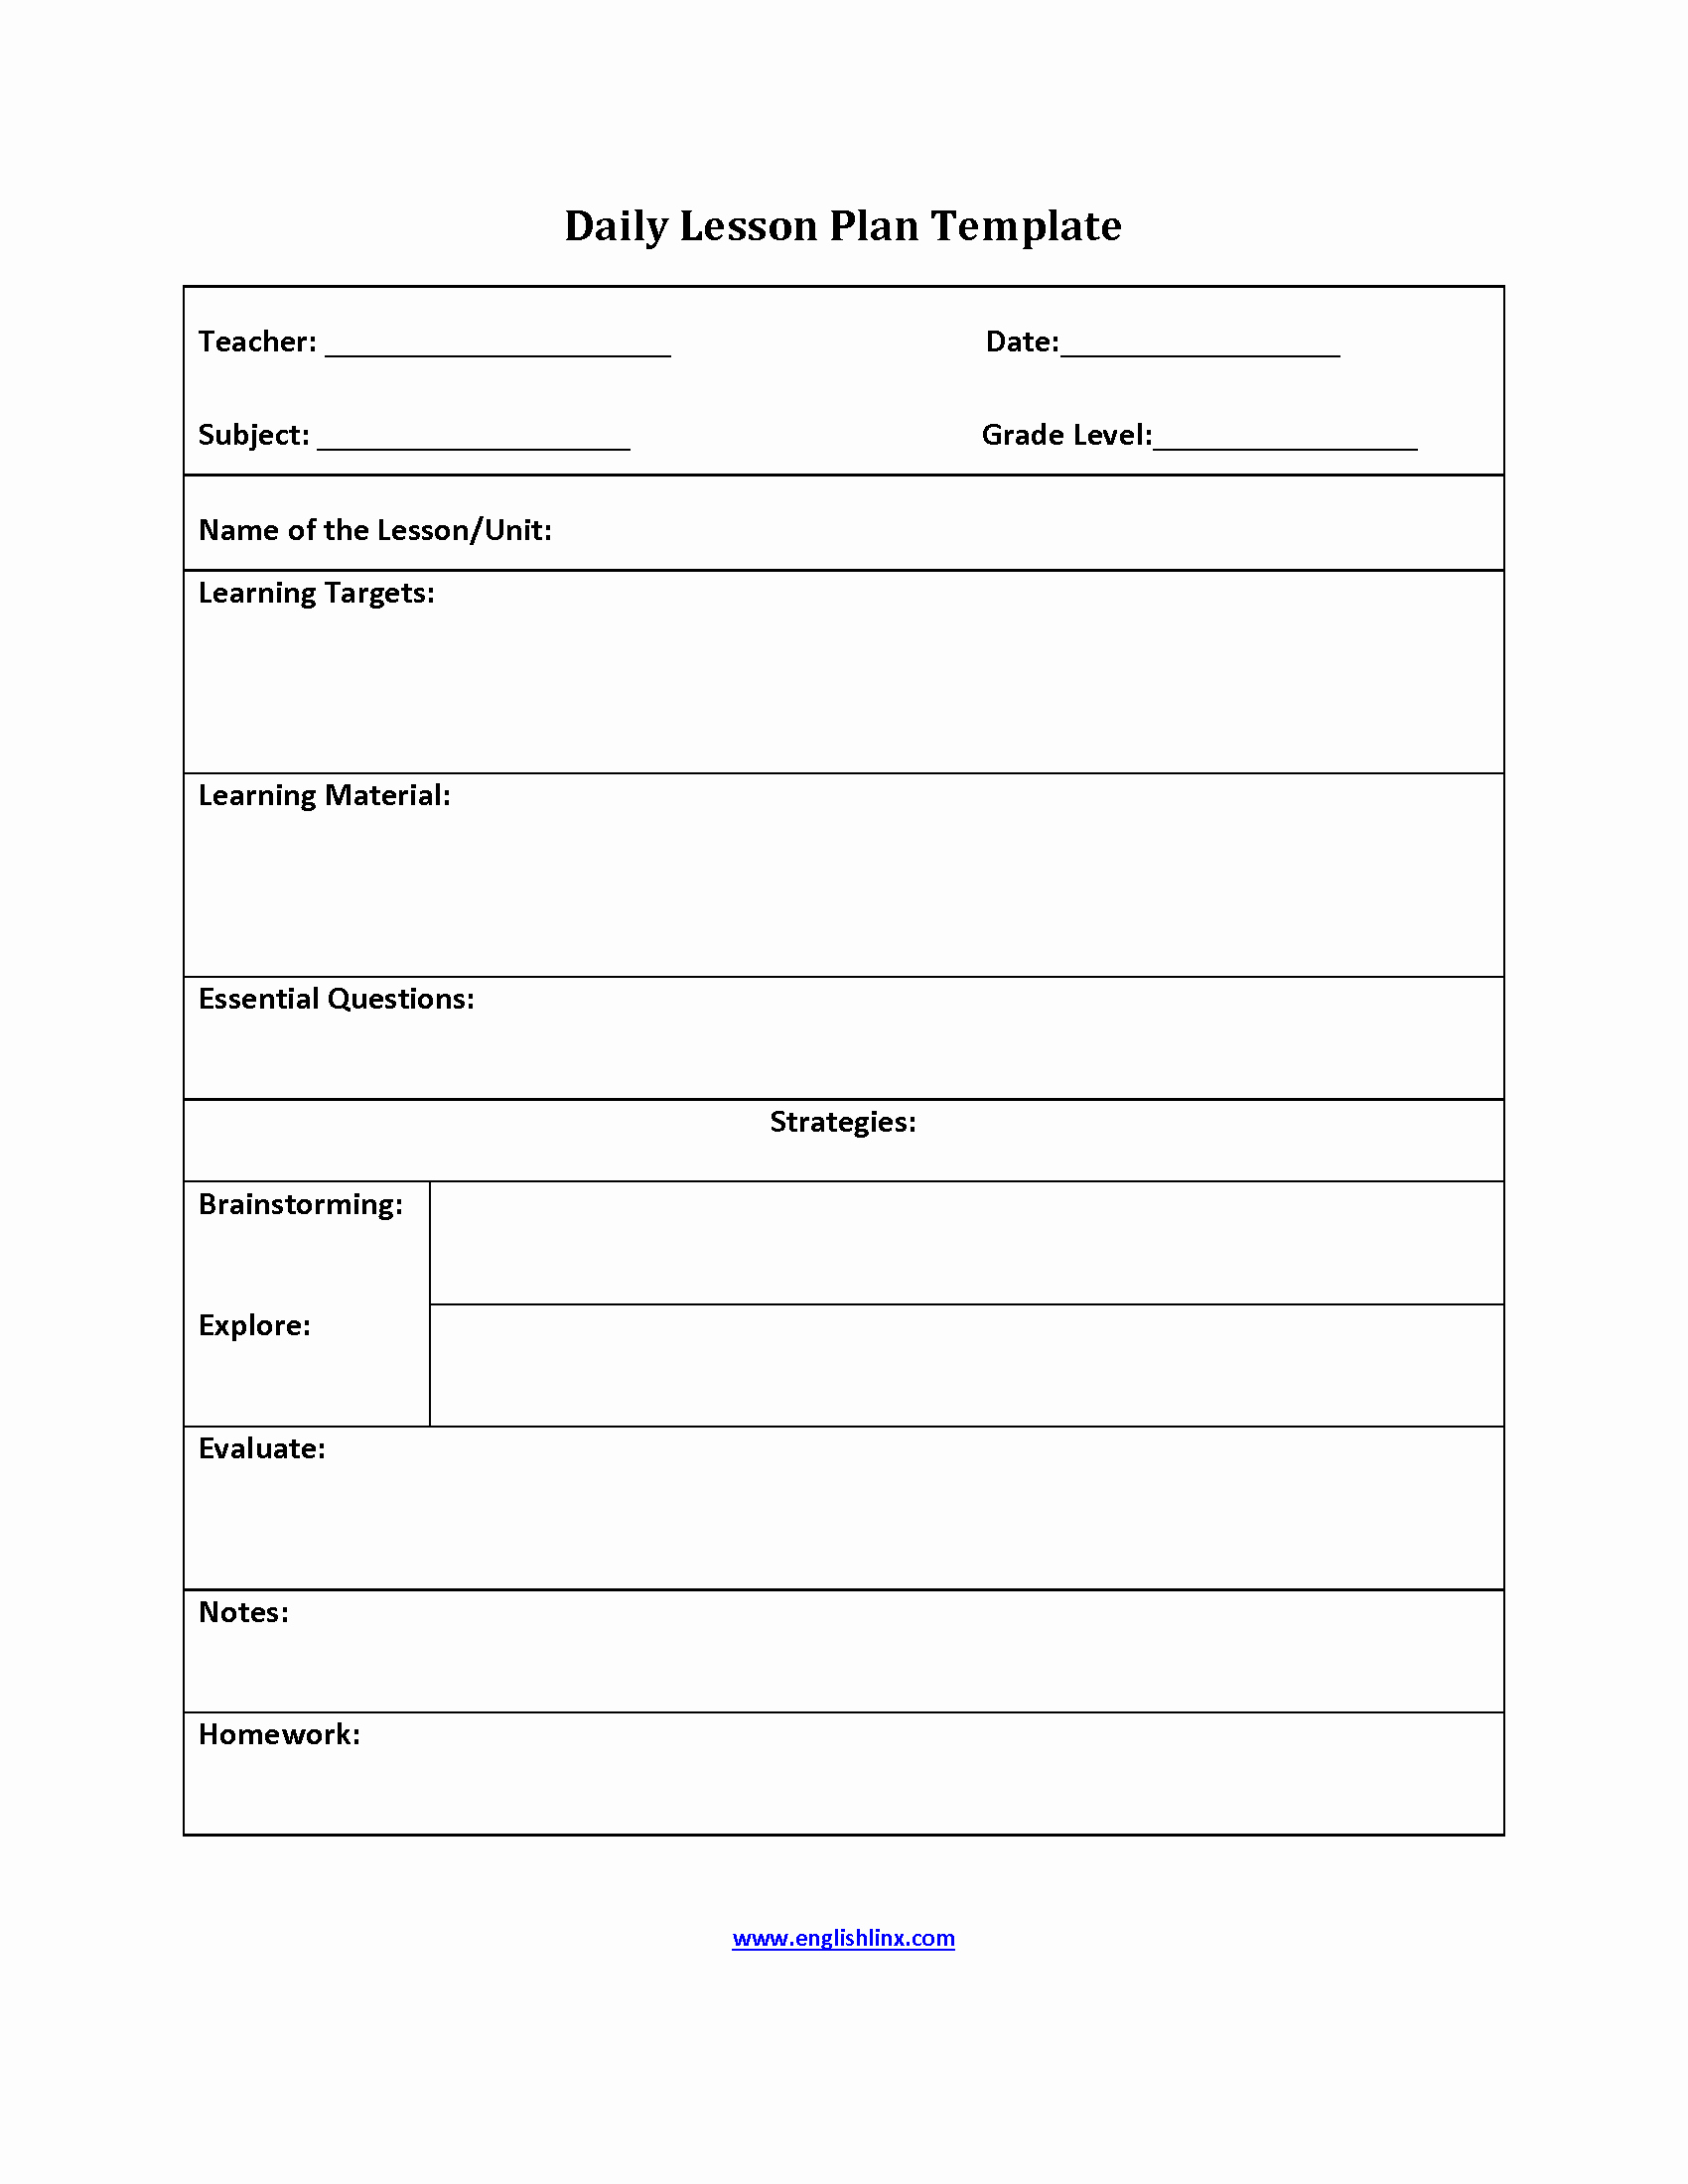 Weekly Lesson Plan Template Doc Fresh Simple Lesson Plan Template for Teachers – Simple Lesson